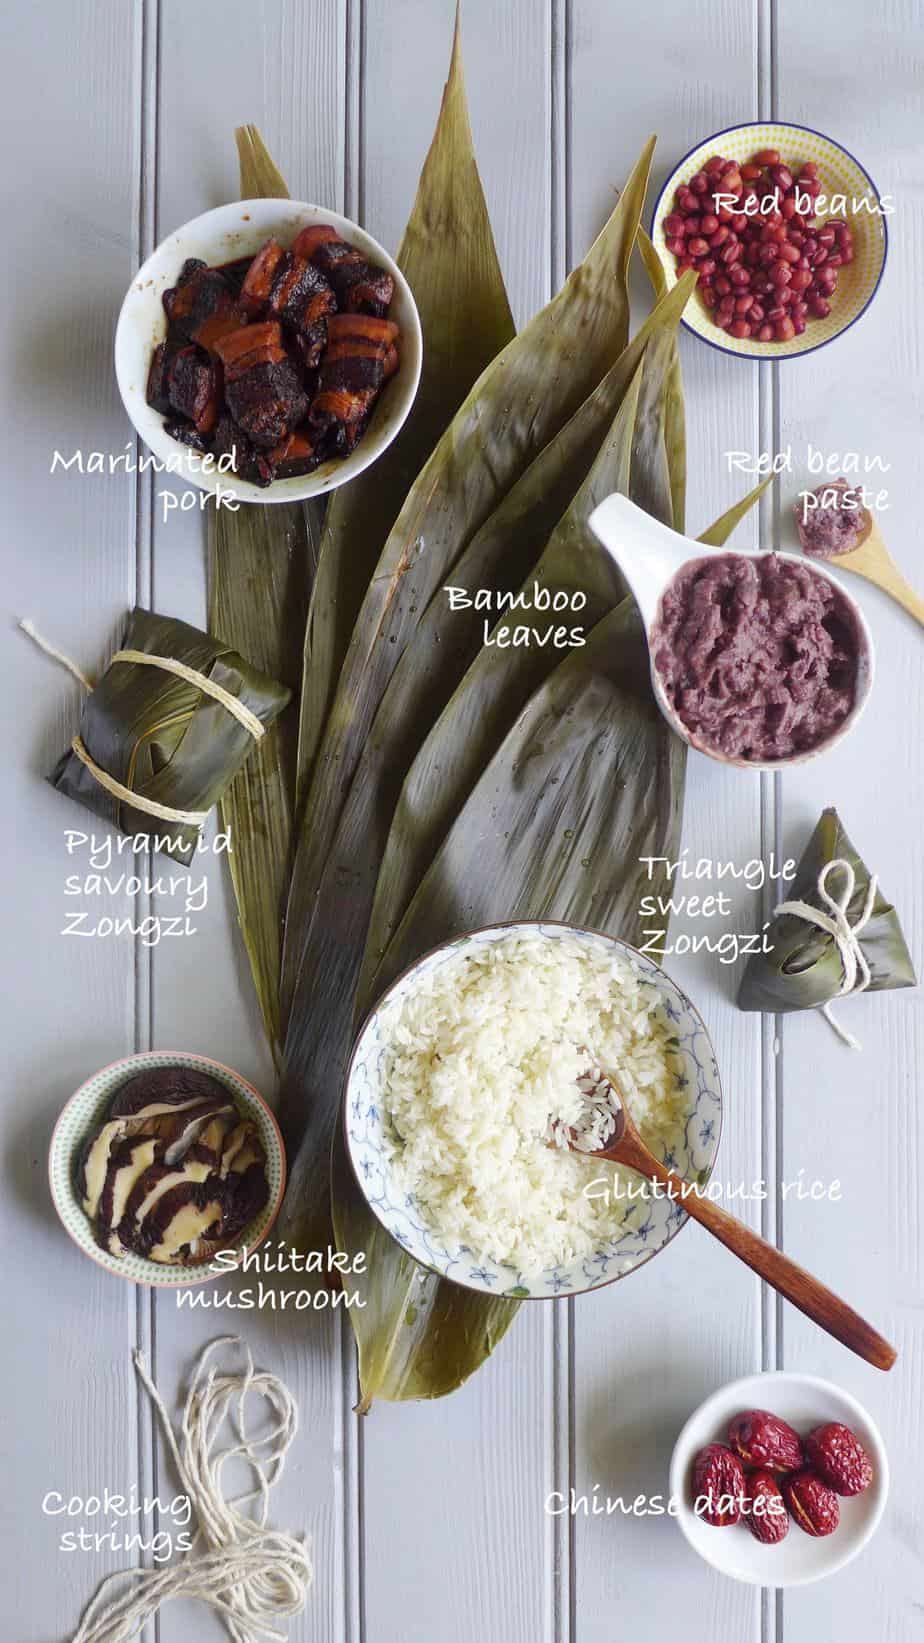 Bamboo leaves & ingredients for making Chinese sticky rice dumplings.